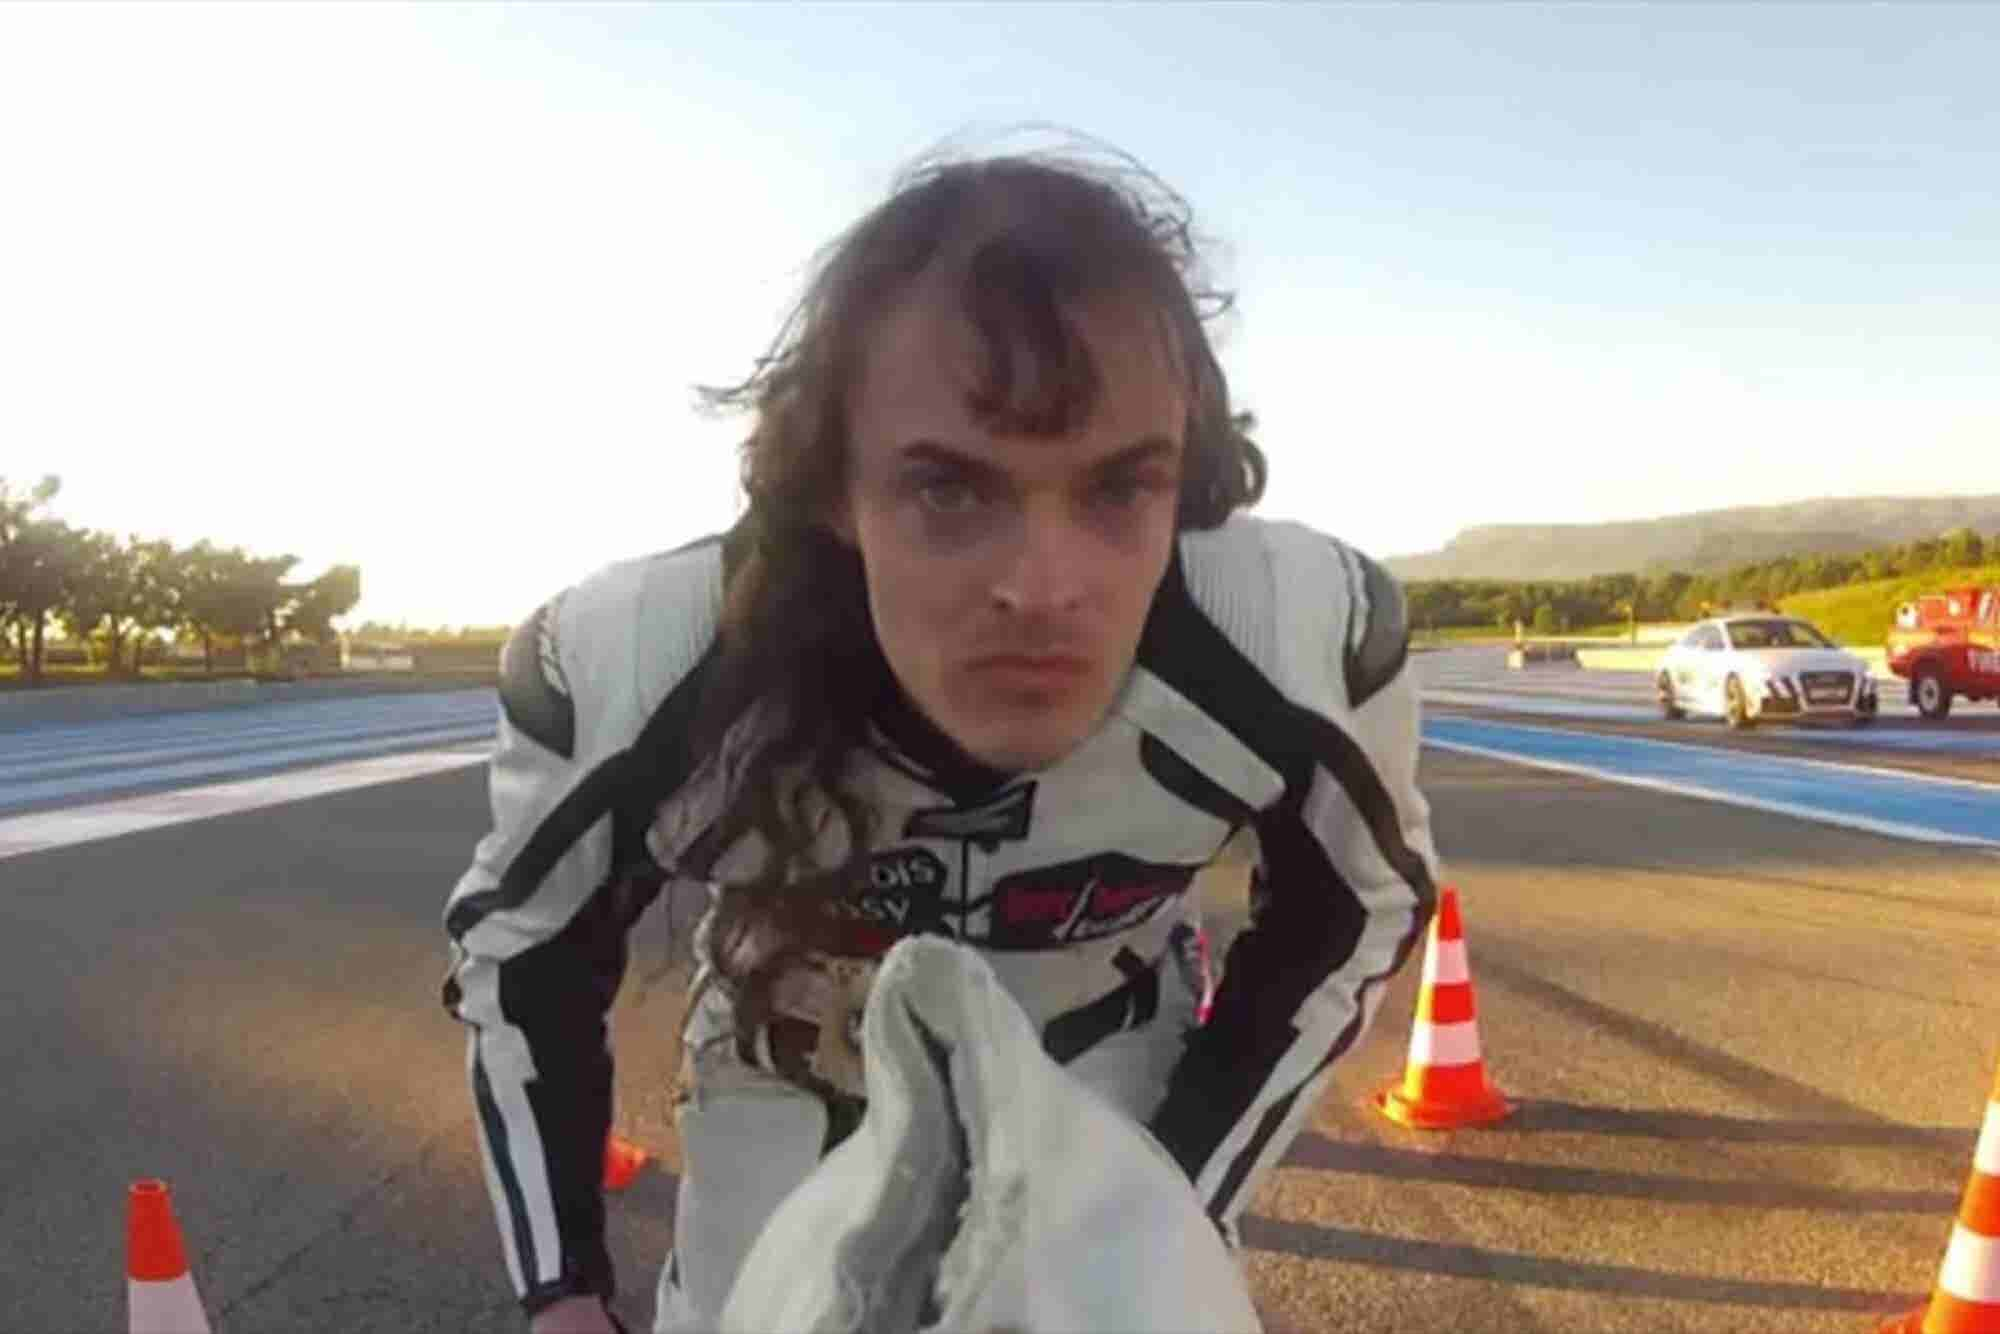 VIDEO: Watch This Fearless Frenchman Laugh in the Face of Death on a Rocket-Powered Bicycle at 207 Miles Per Hour